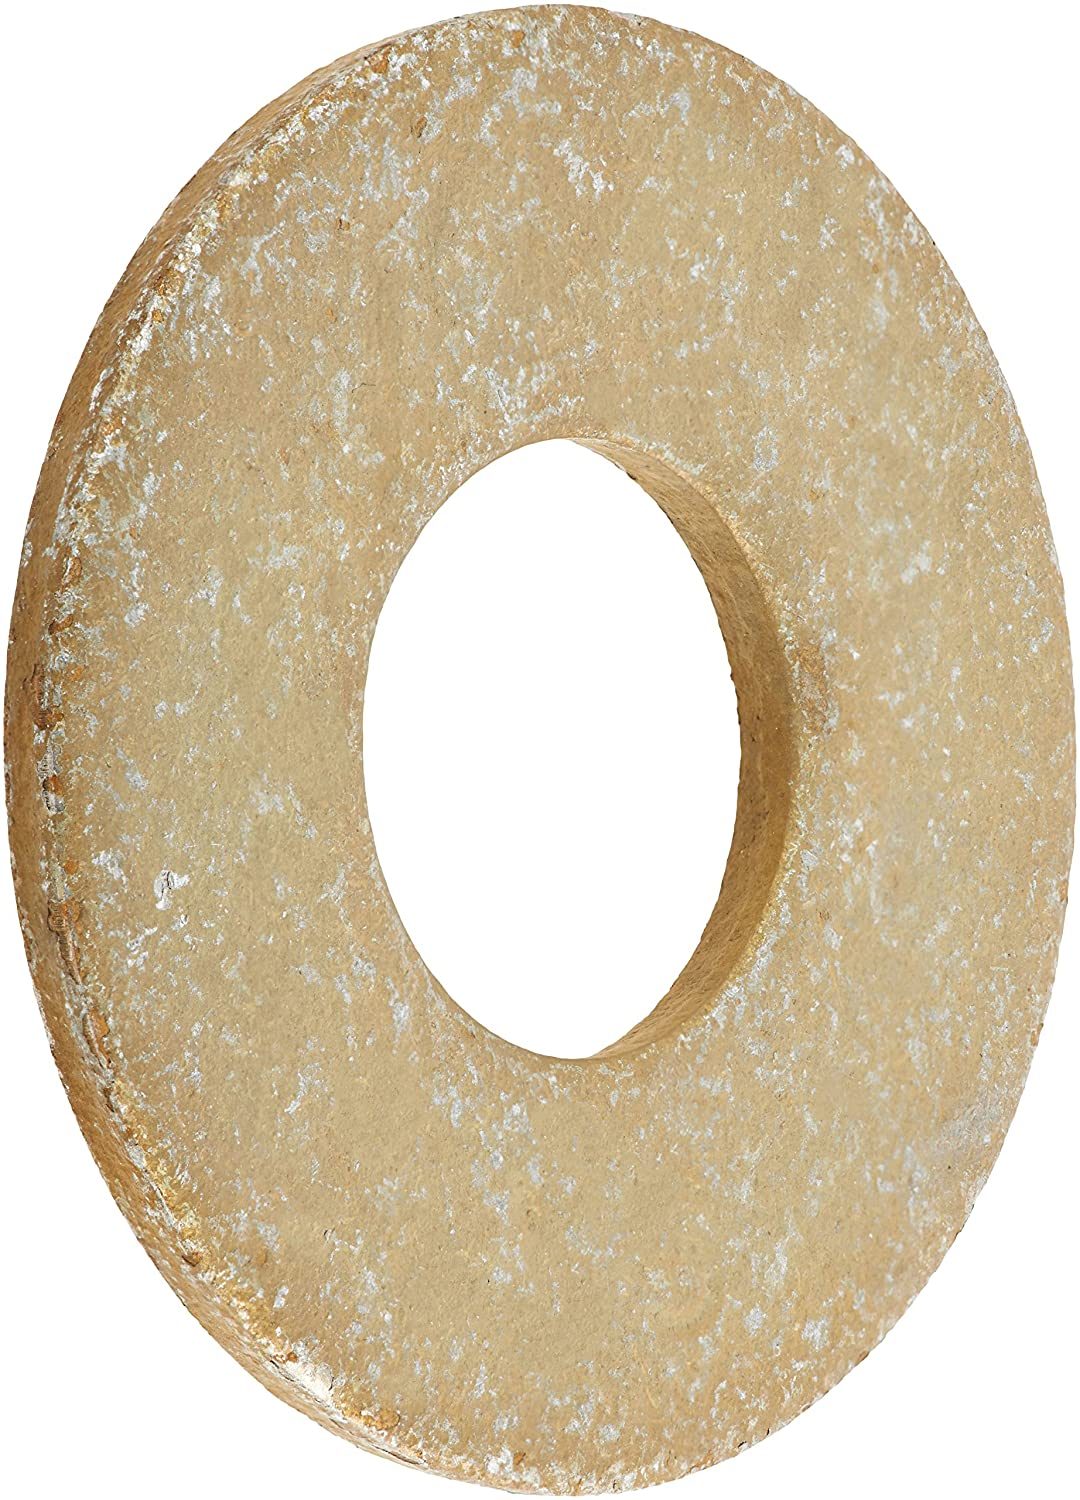 The Hillman Group 280308 3/4-Inch Flat Hardened Washer, 20-Pack